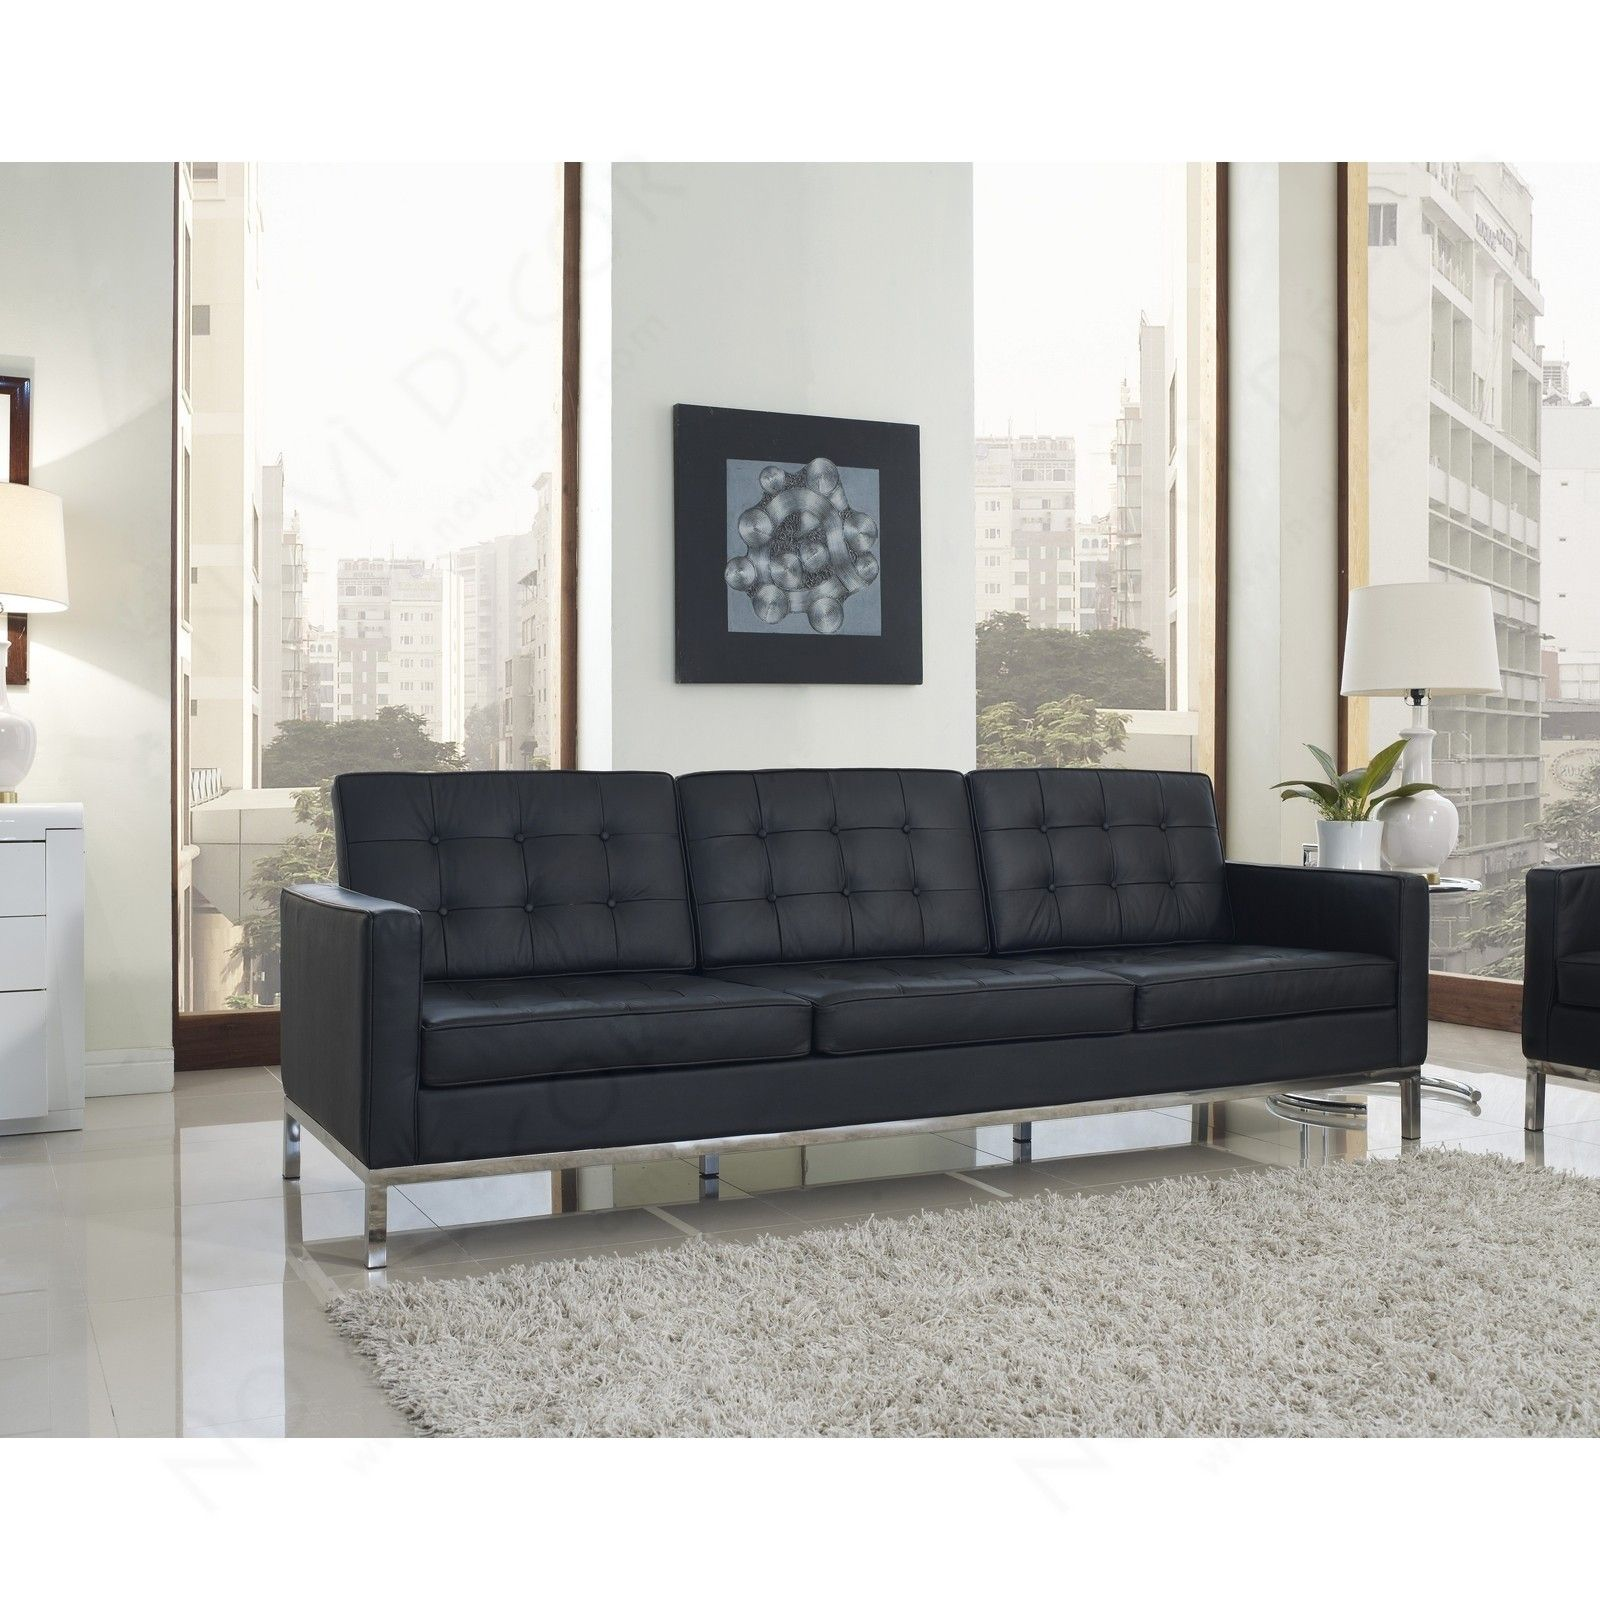 Florence Knoll Sofa In Leather Black 1 Jpg With Images